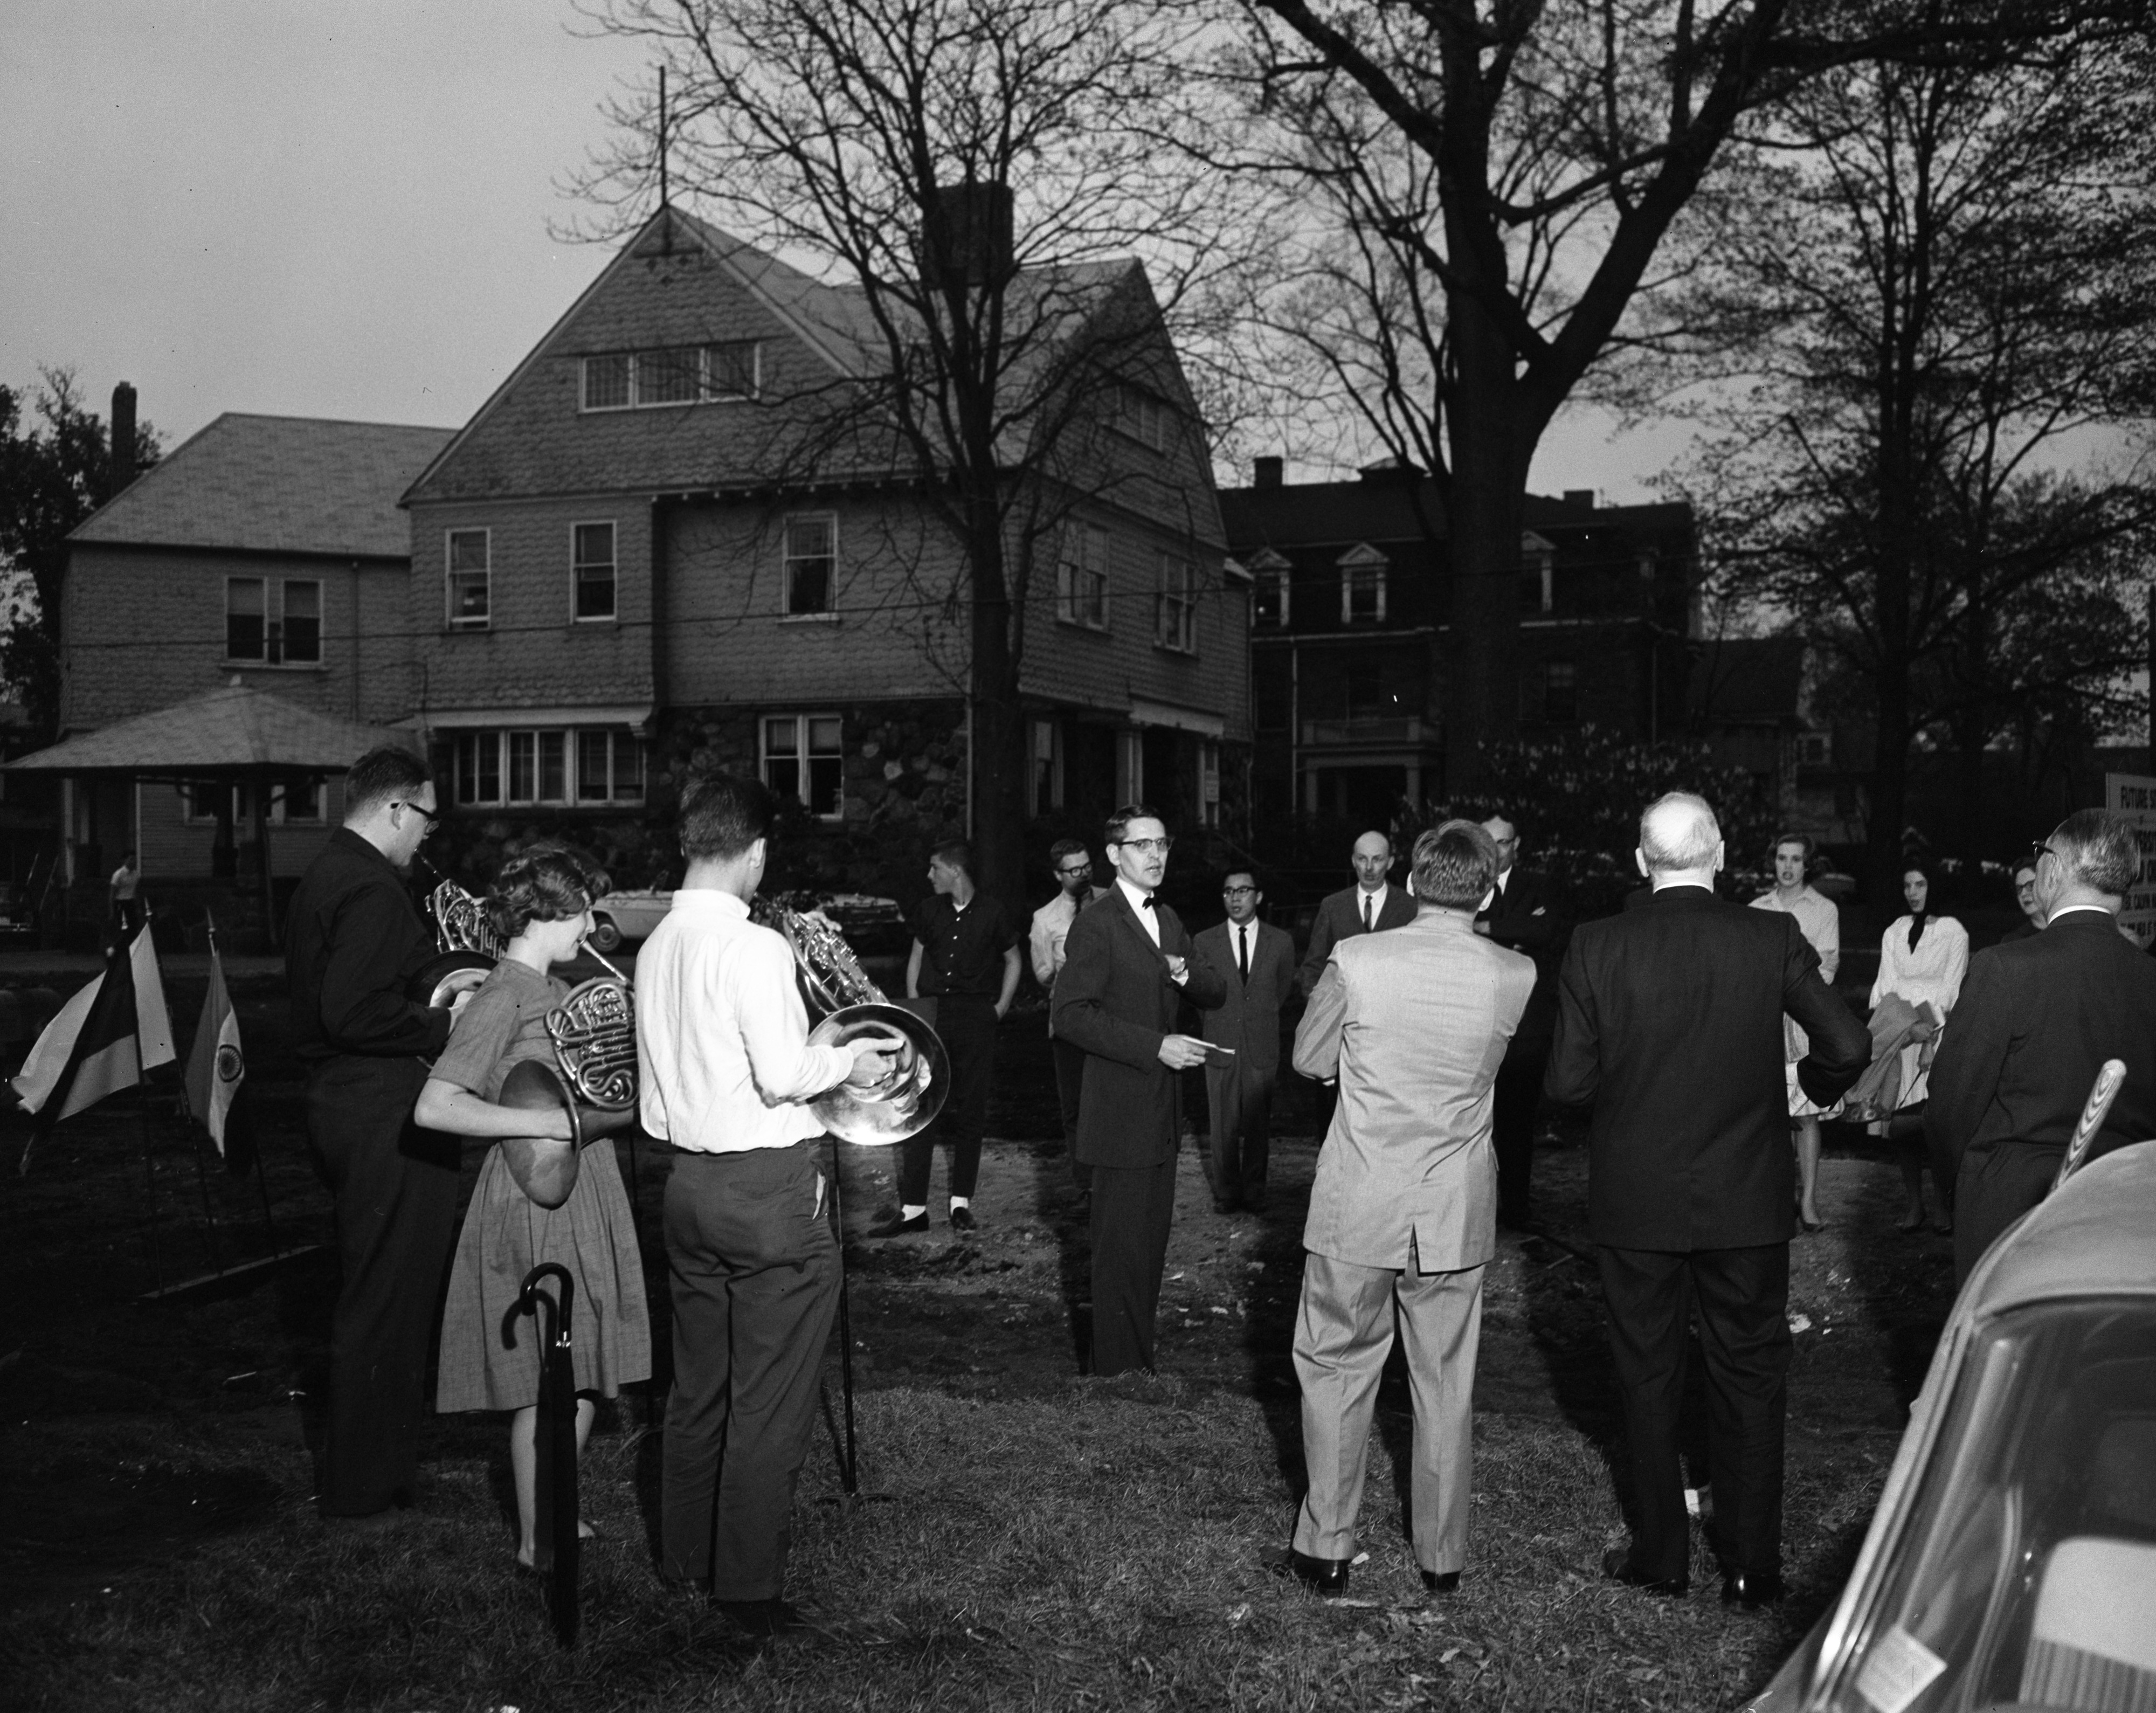 Ground-Breaking Ceremony for University Reformed Church on E. Huron St, May 1963 image